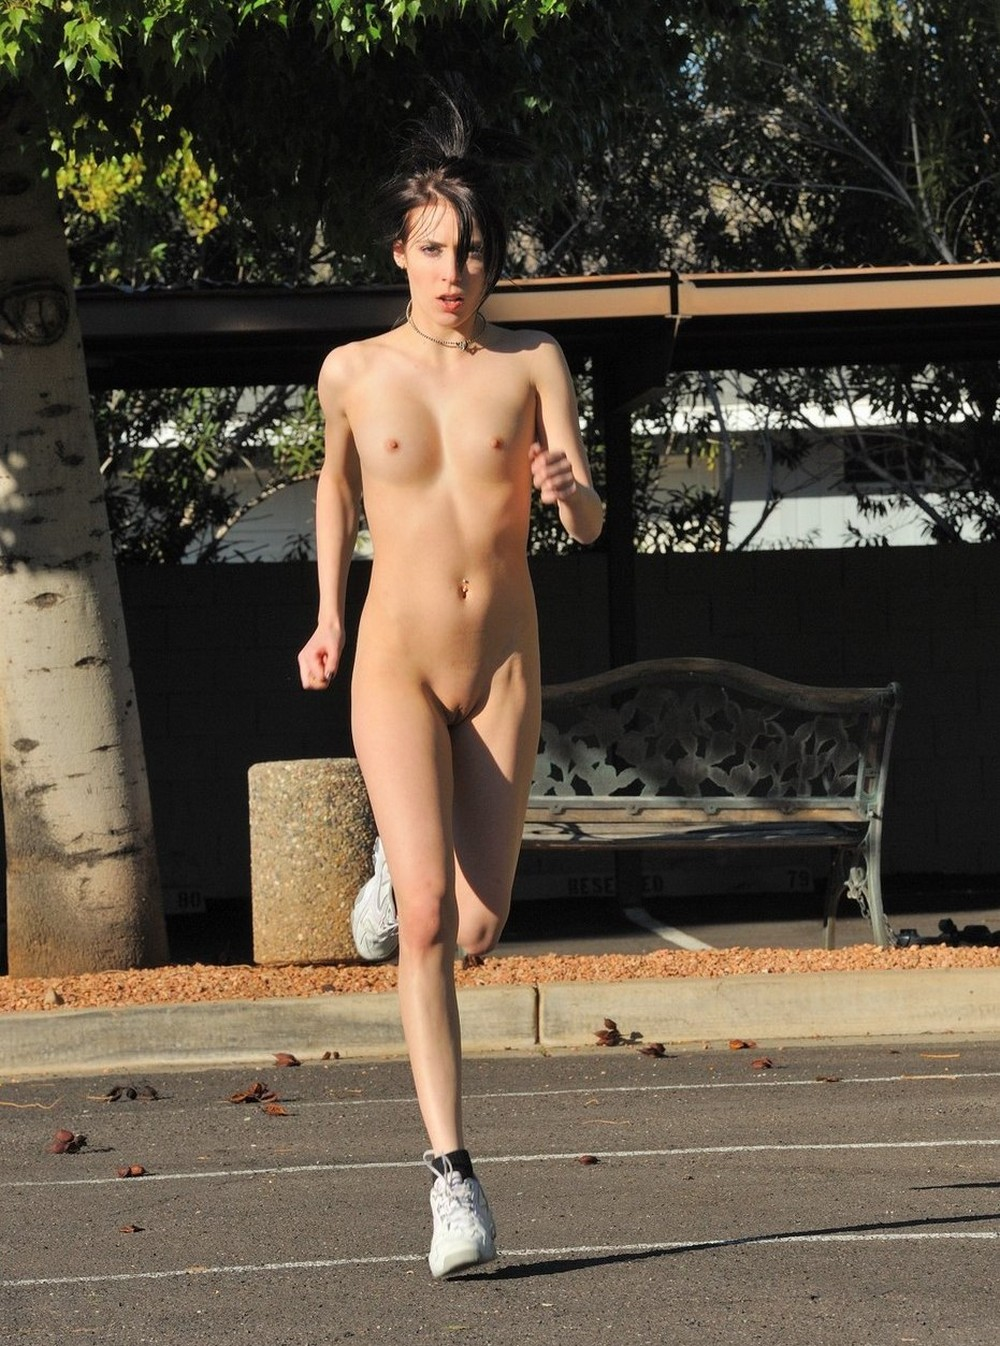 Girls naked jogging #10